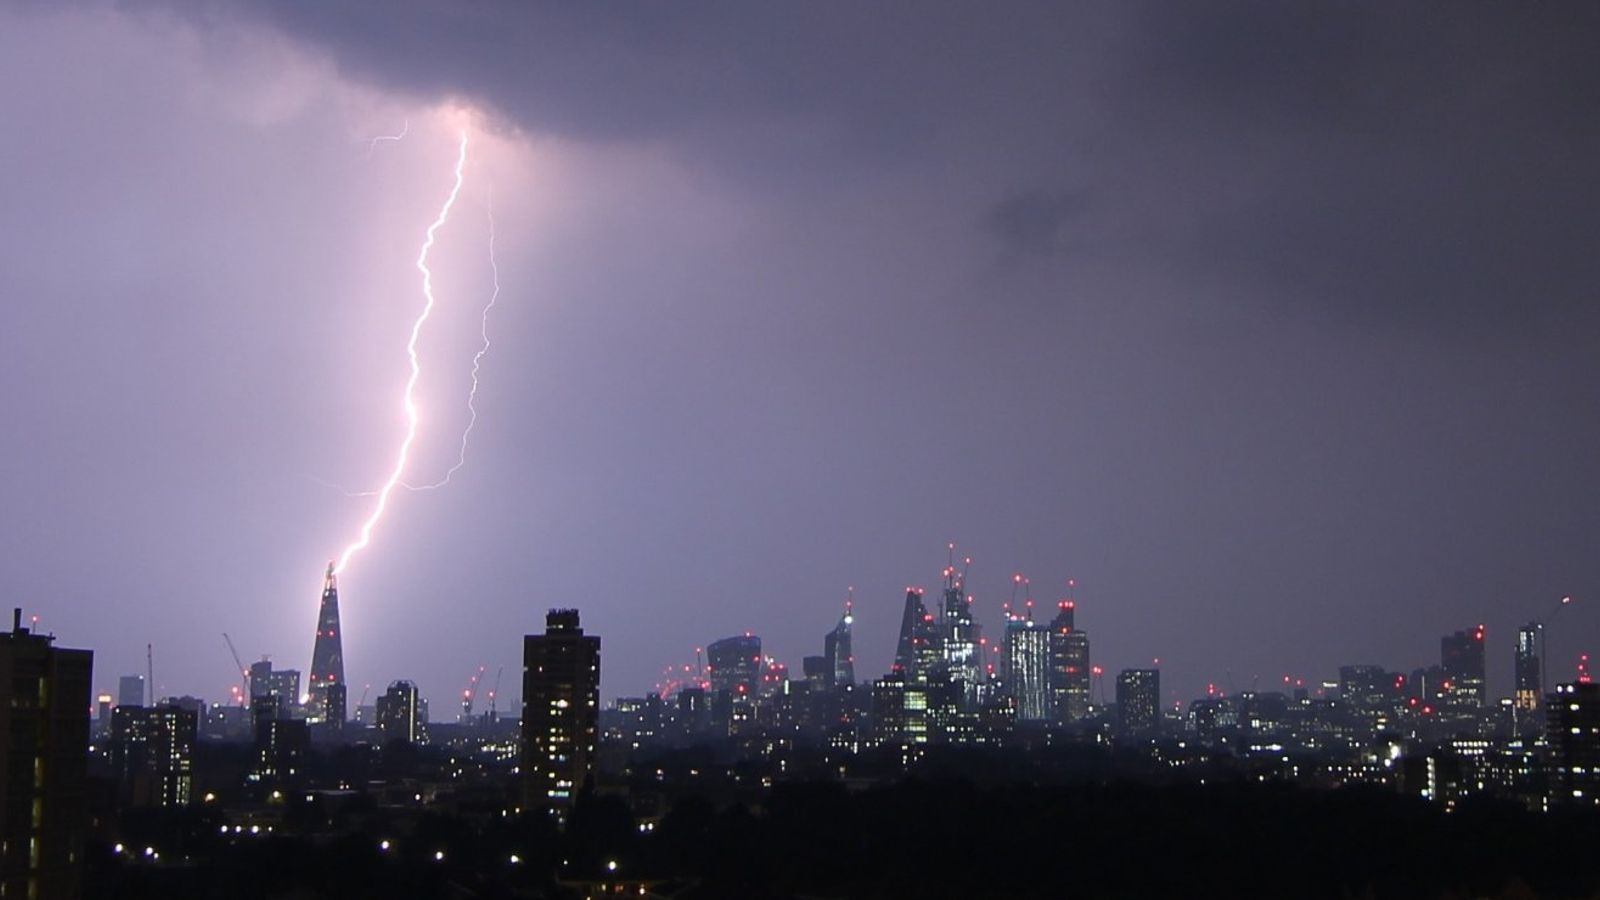 thunderstorms deliver more than 60 000 lightning strikes across uk